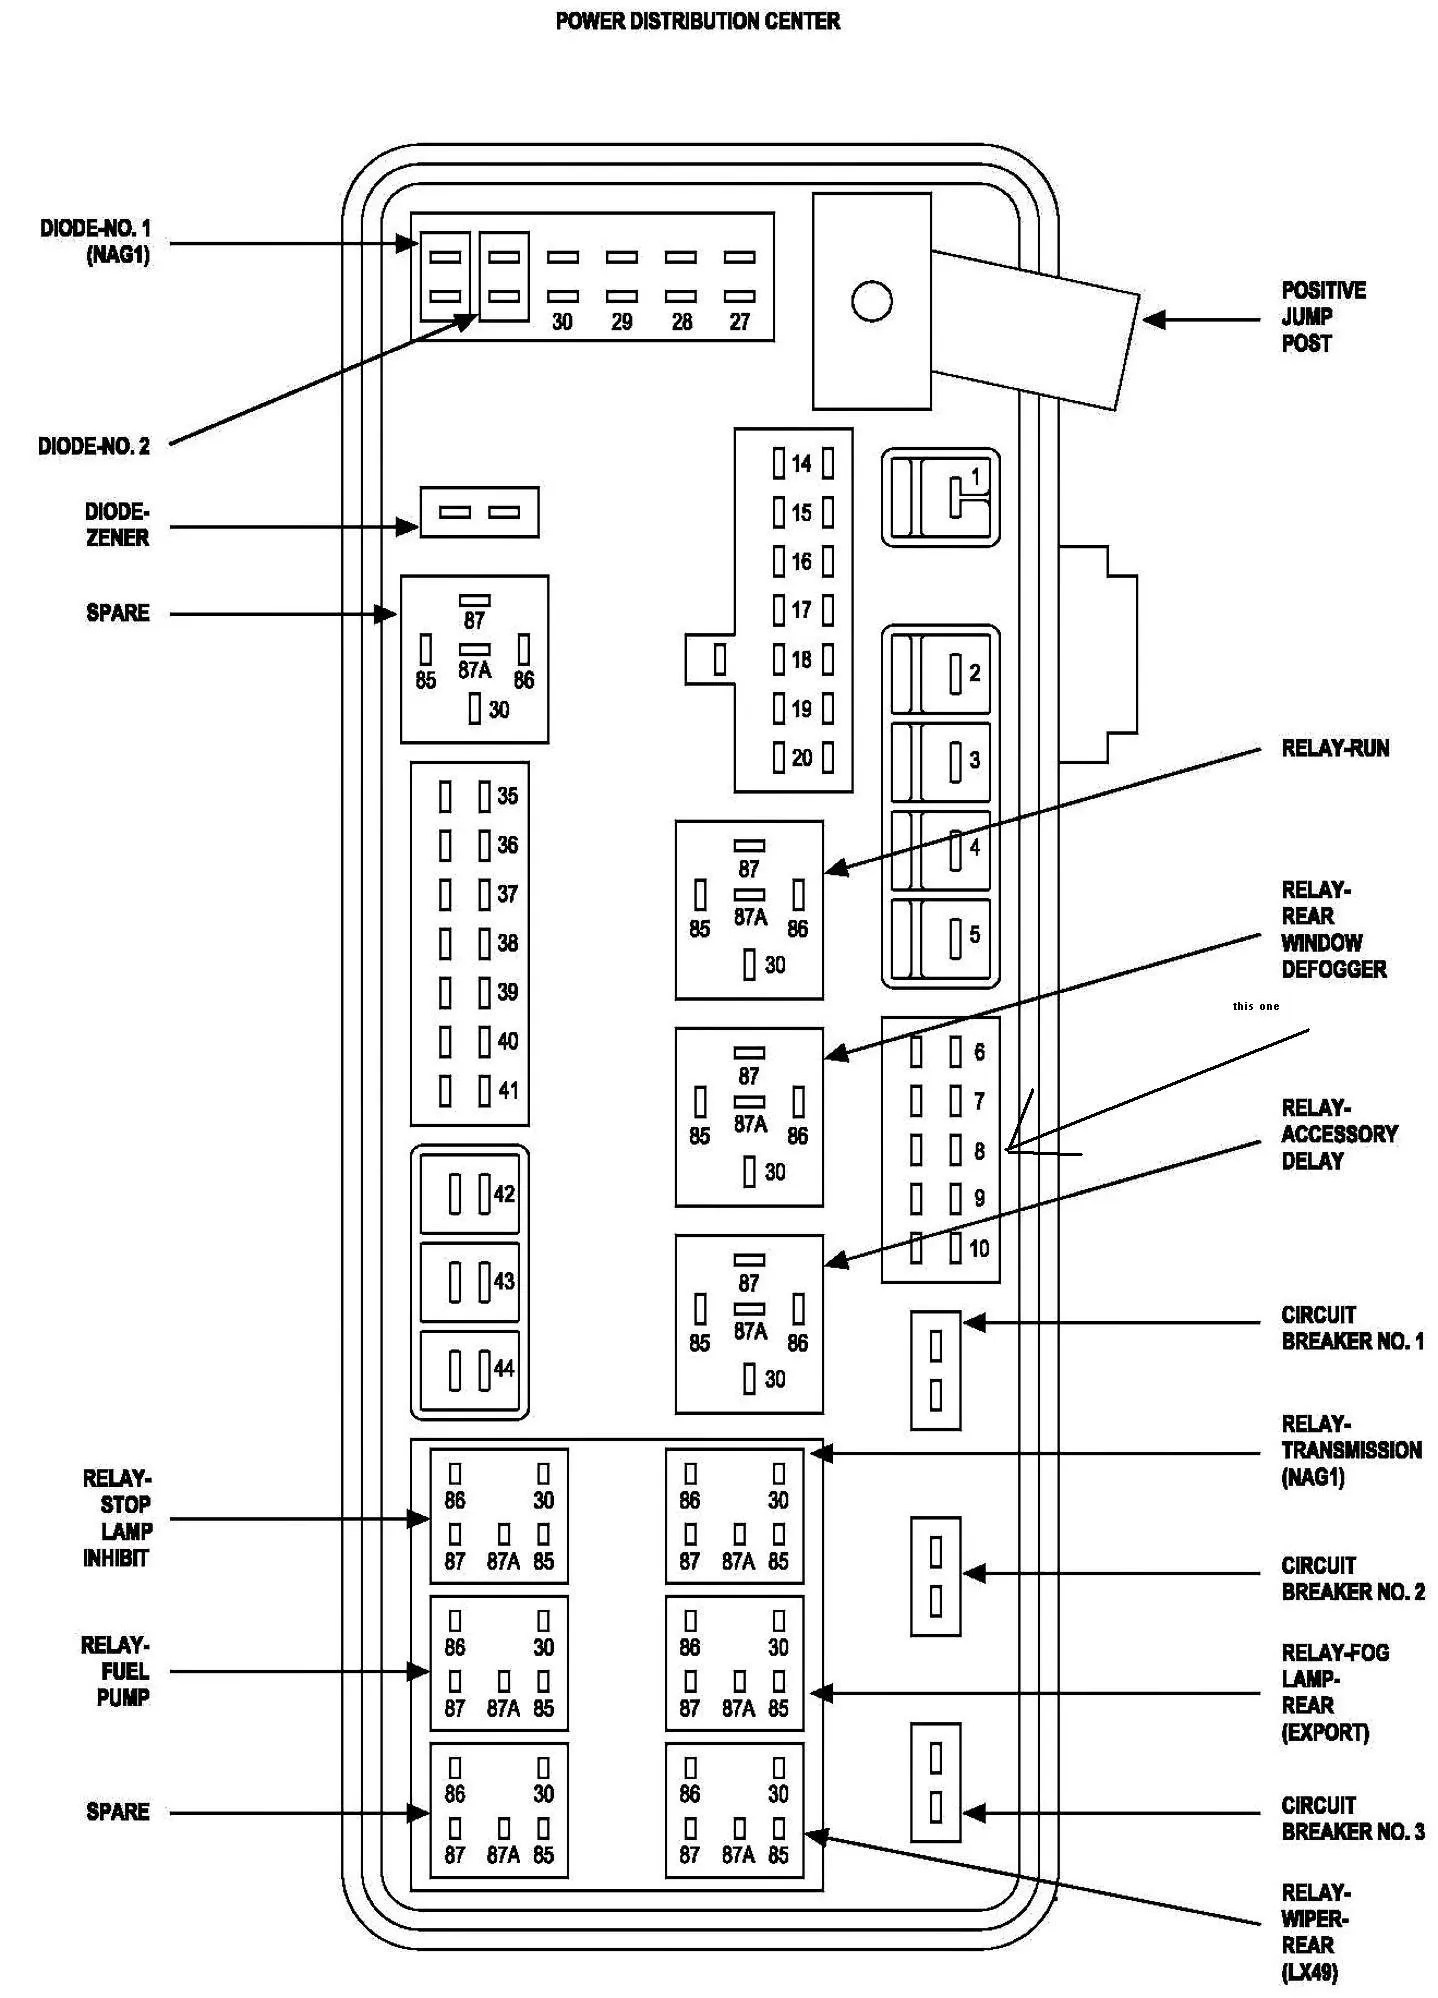 hight resolution of dodge ram 3500 fuse box diagram wiring diagram user 2000 dodge stratus fuse box diagram 07